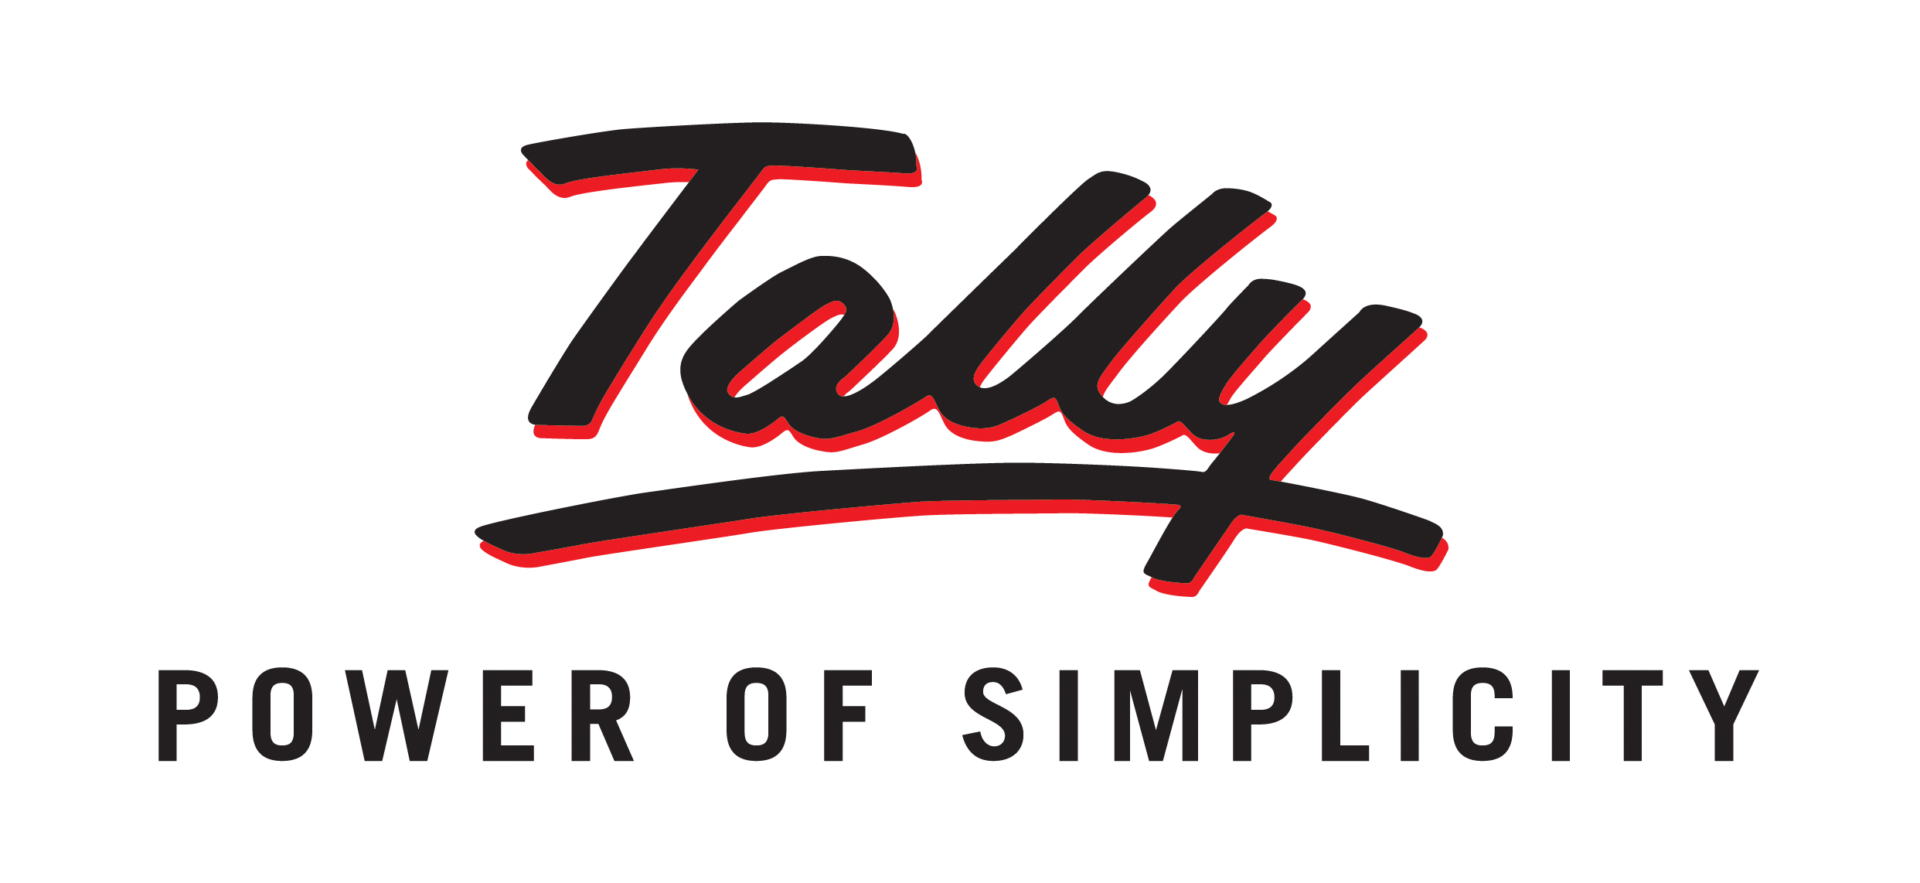 Tally_Logo_rockfordcomputer